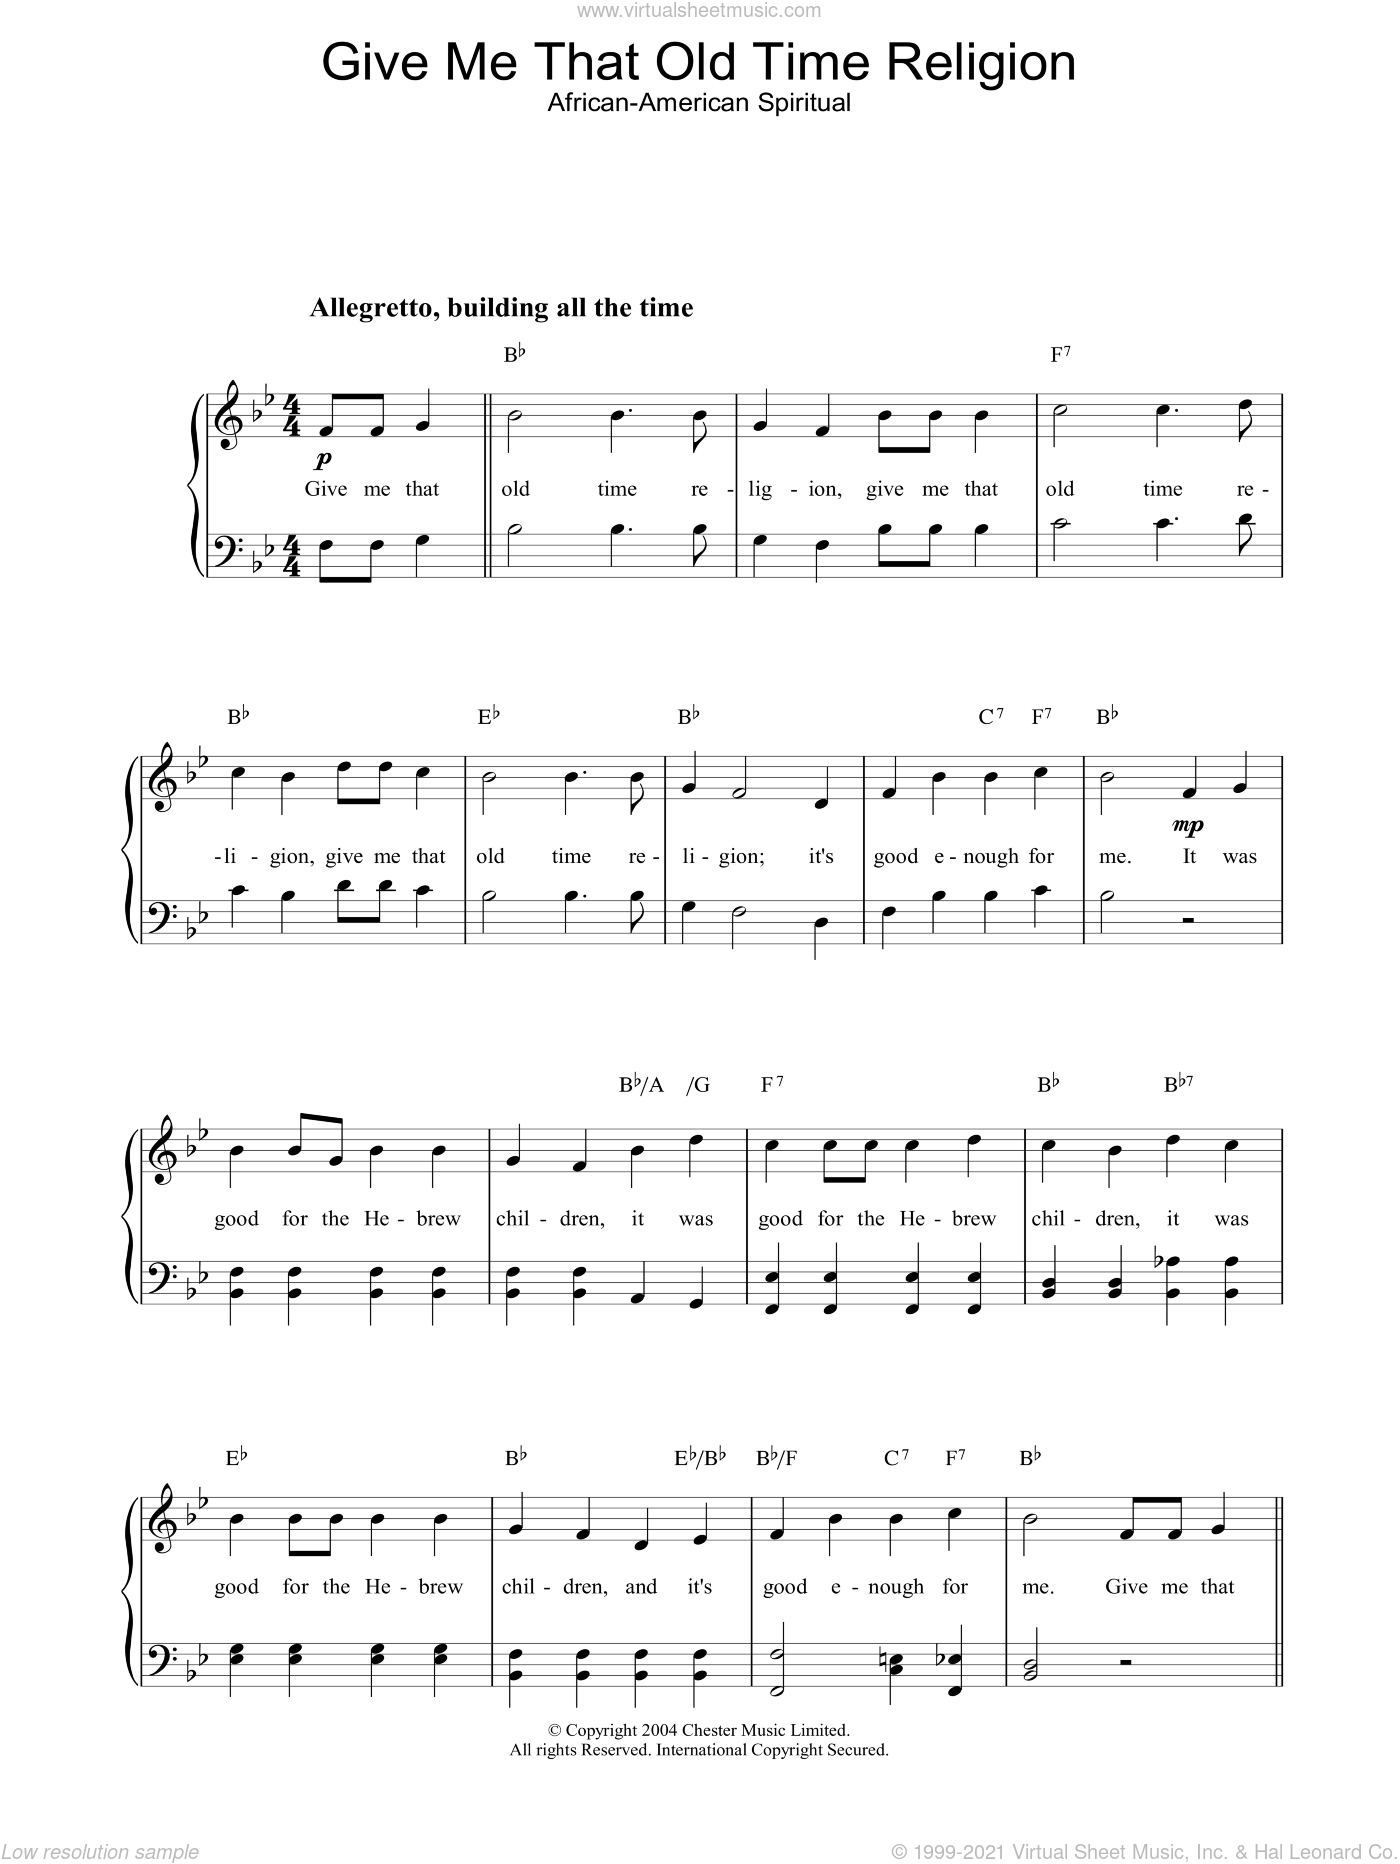 Give Me That Old Time Religion sheet music for piano solo, easy skill level